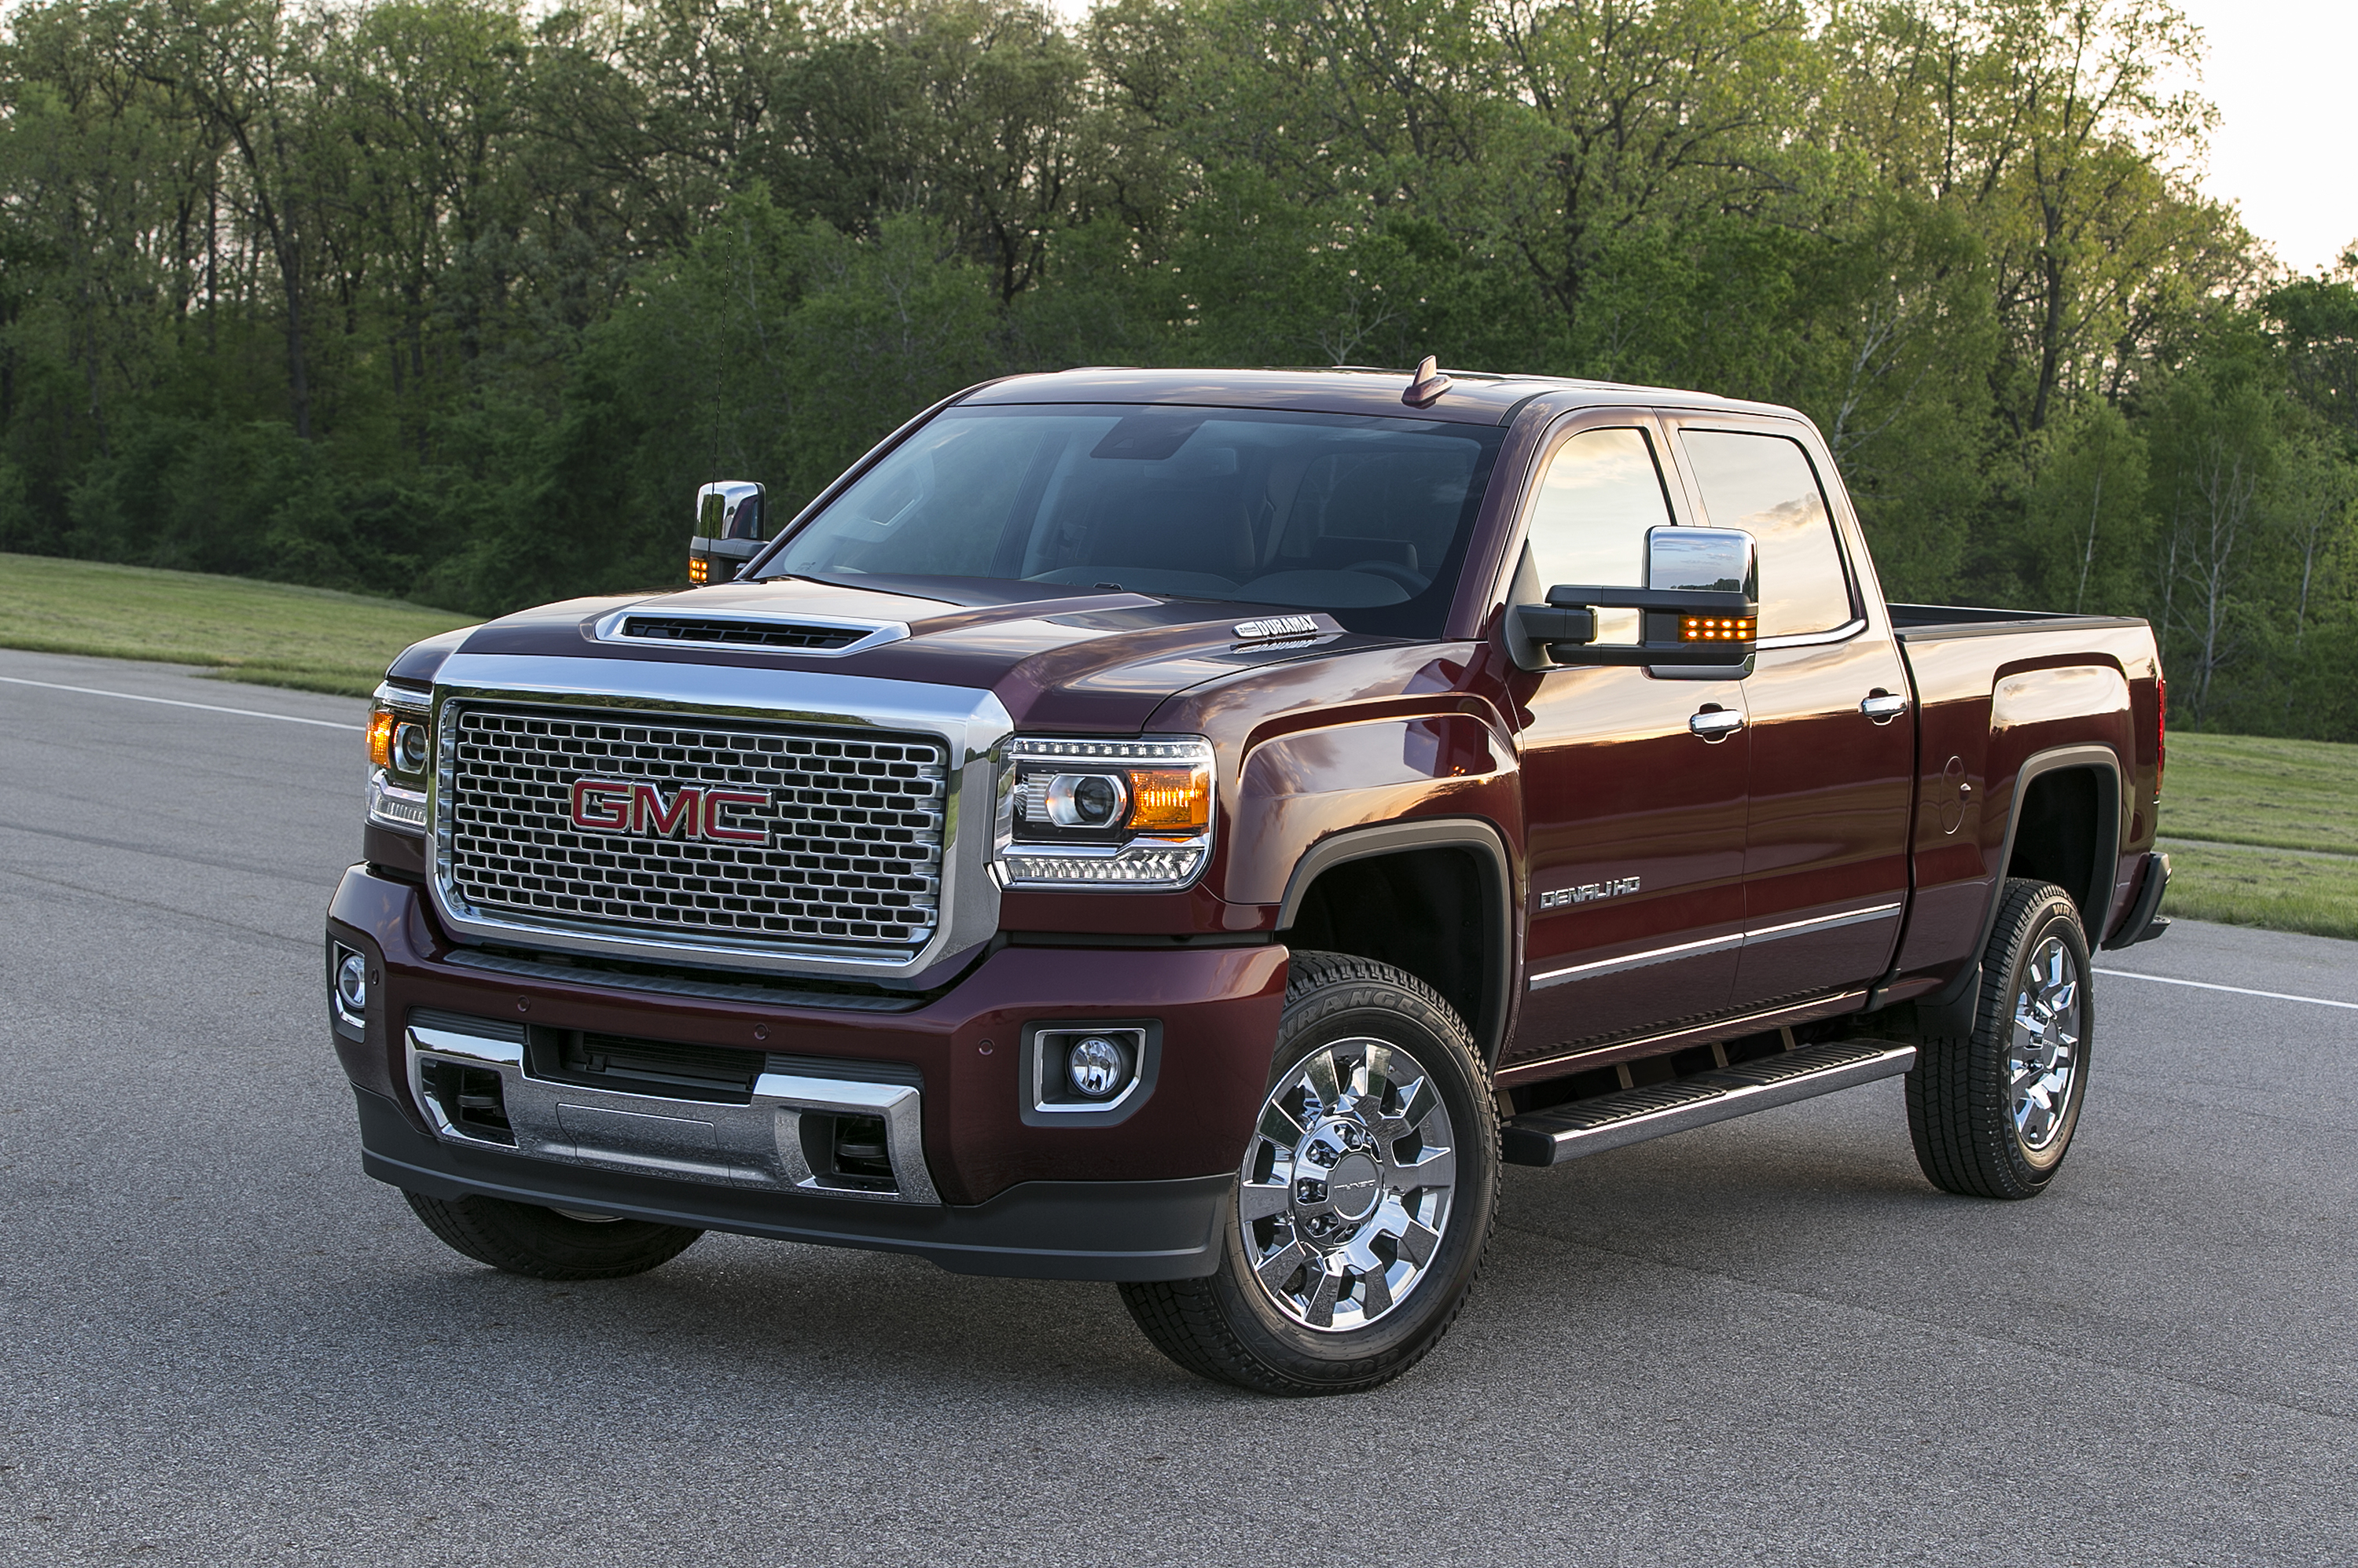 2017 gmc sierra denali 2500 heavy duty hides something. Black Bedroom Furniture Sets. Home Design Ideas